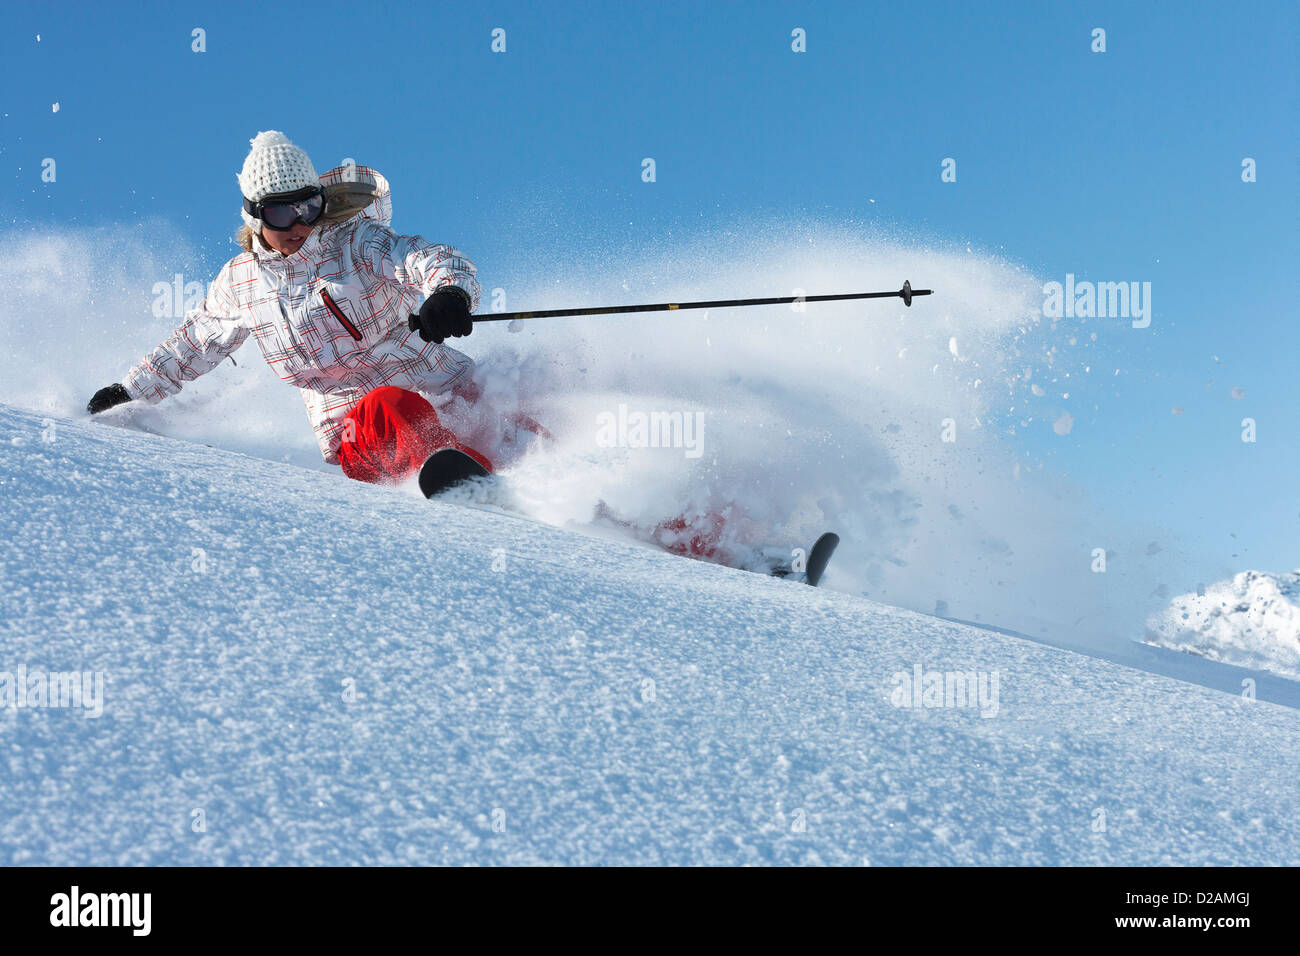 Skier on snowy slope - Stock Image